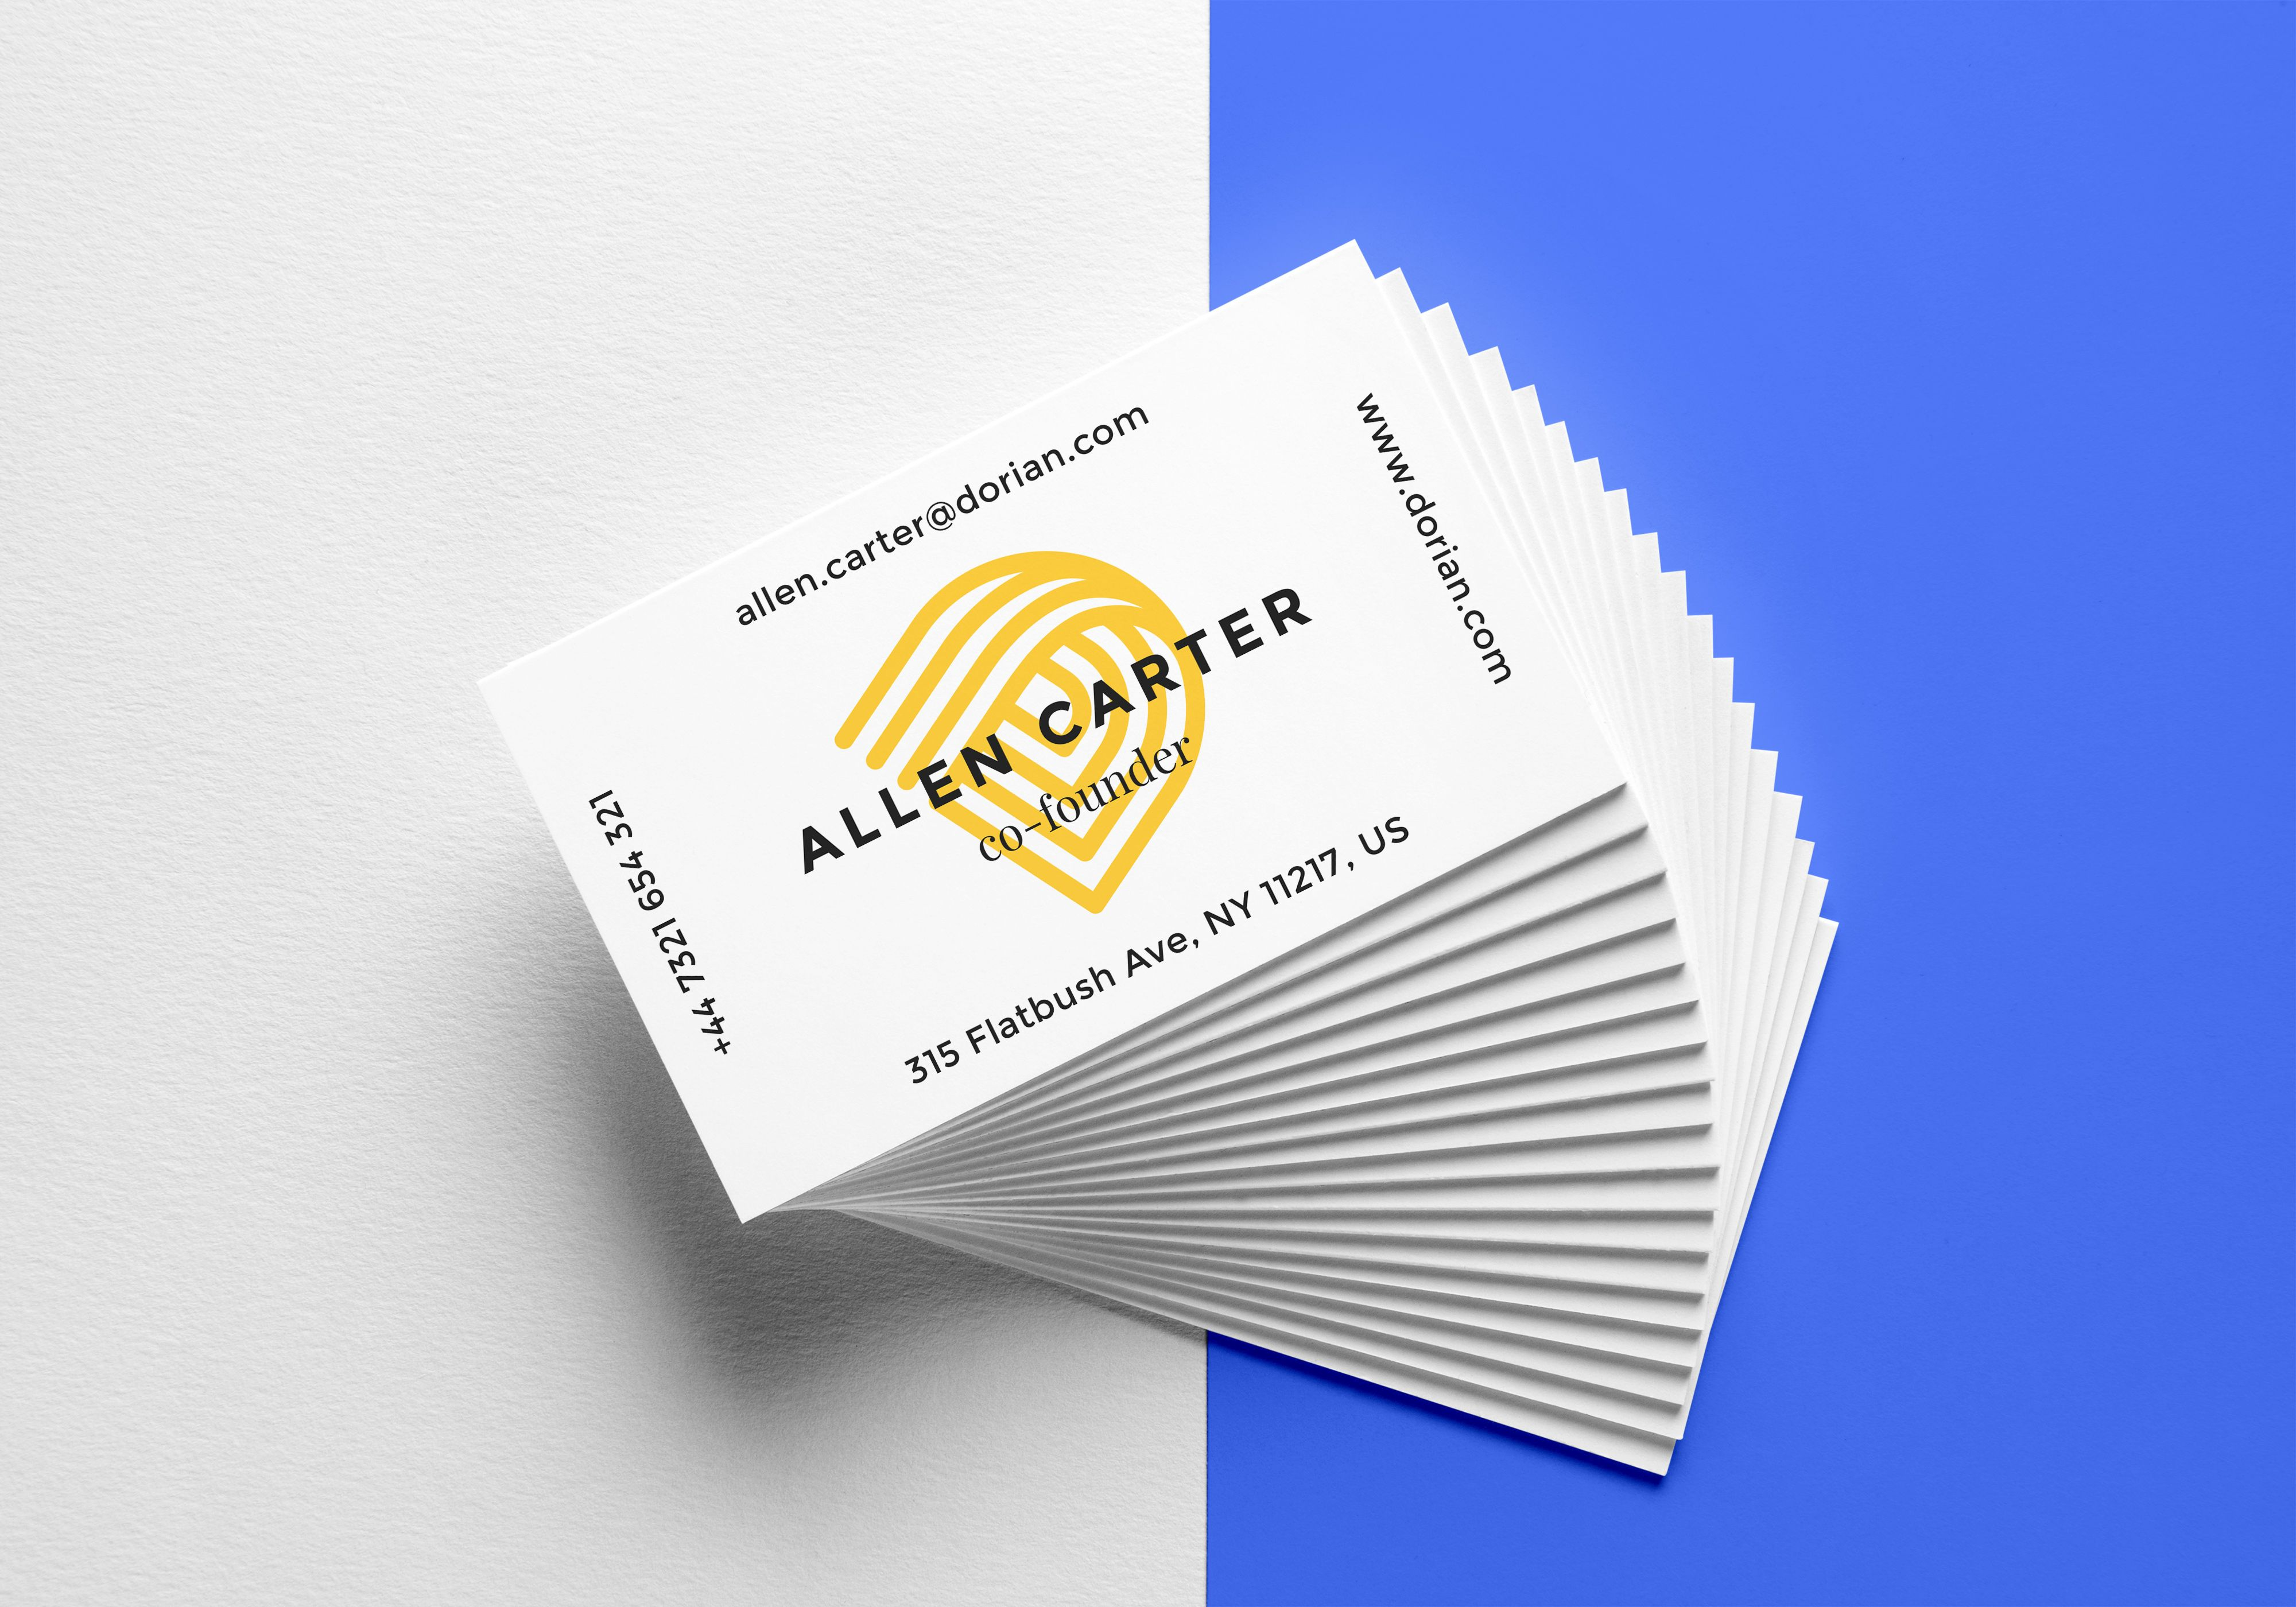 behance realistic business cards behance realistic business cards mockup free download reheart Image collections